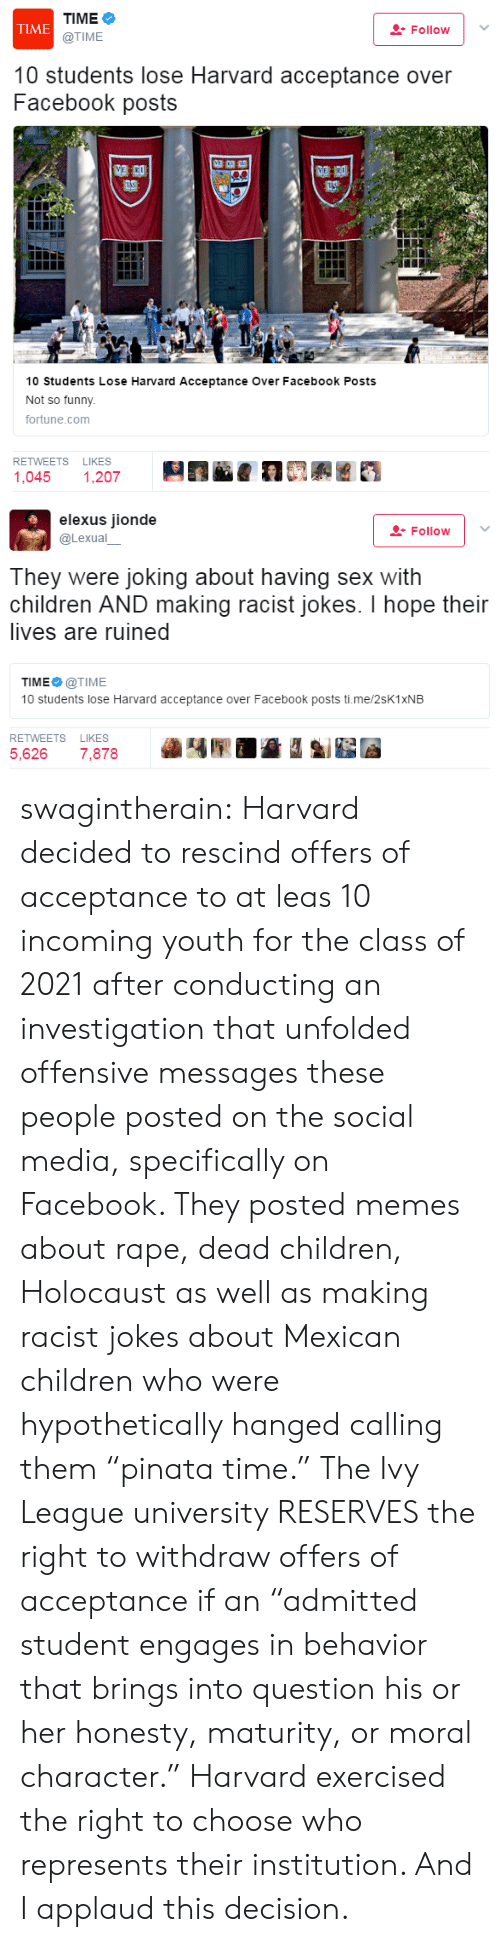 "Incoming: TIME  @TIME  TIME  Follovw  10 students lose Harvard acceptance over  Facebook posts  10 Students Lose Harvard Acceptance Over Facebook Posts  Not so funny  fortune.com  RETWEETS LIKES  1,045 1,207   elexus jionde  @Lexual  Follow | .  They were joking about having sex with  children AND making racist jokes. I hope their  lives are ruined  TIME@TIME  10 students lose Harvard acceptance over Facebook posts ti.me/2sK1XNEB  RETWEETS LIKES  5,626 7,878 swagintherain: Harvard decided to rescind offers of acceptance to at leas 10 incoming youth for the class of 2021 after conducting an investigation that unfolded offensive messages these people posted on the social media, specifically on Facebook. They posted memes about rape, dead children, Holocaust as well as making racist jokes about Mexican children who were hypothetically hanged calling them ""pinata time.""   The Ivy League university RESERVES the right to withdraw offers of acceptance   if an ""admitted student engages in behavior that brings into question his or her honesty, maturity, or moral character.""   Harvard exercised the right to choose who represents their institution. And I applaud this decision."